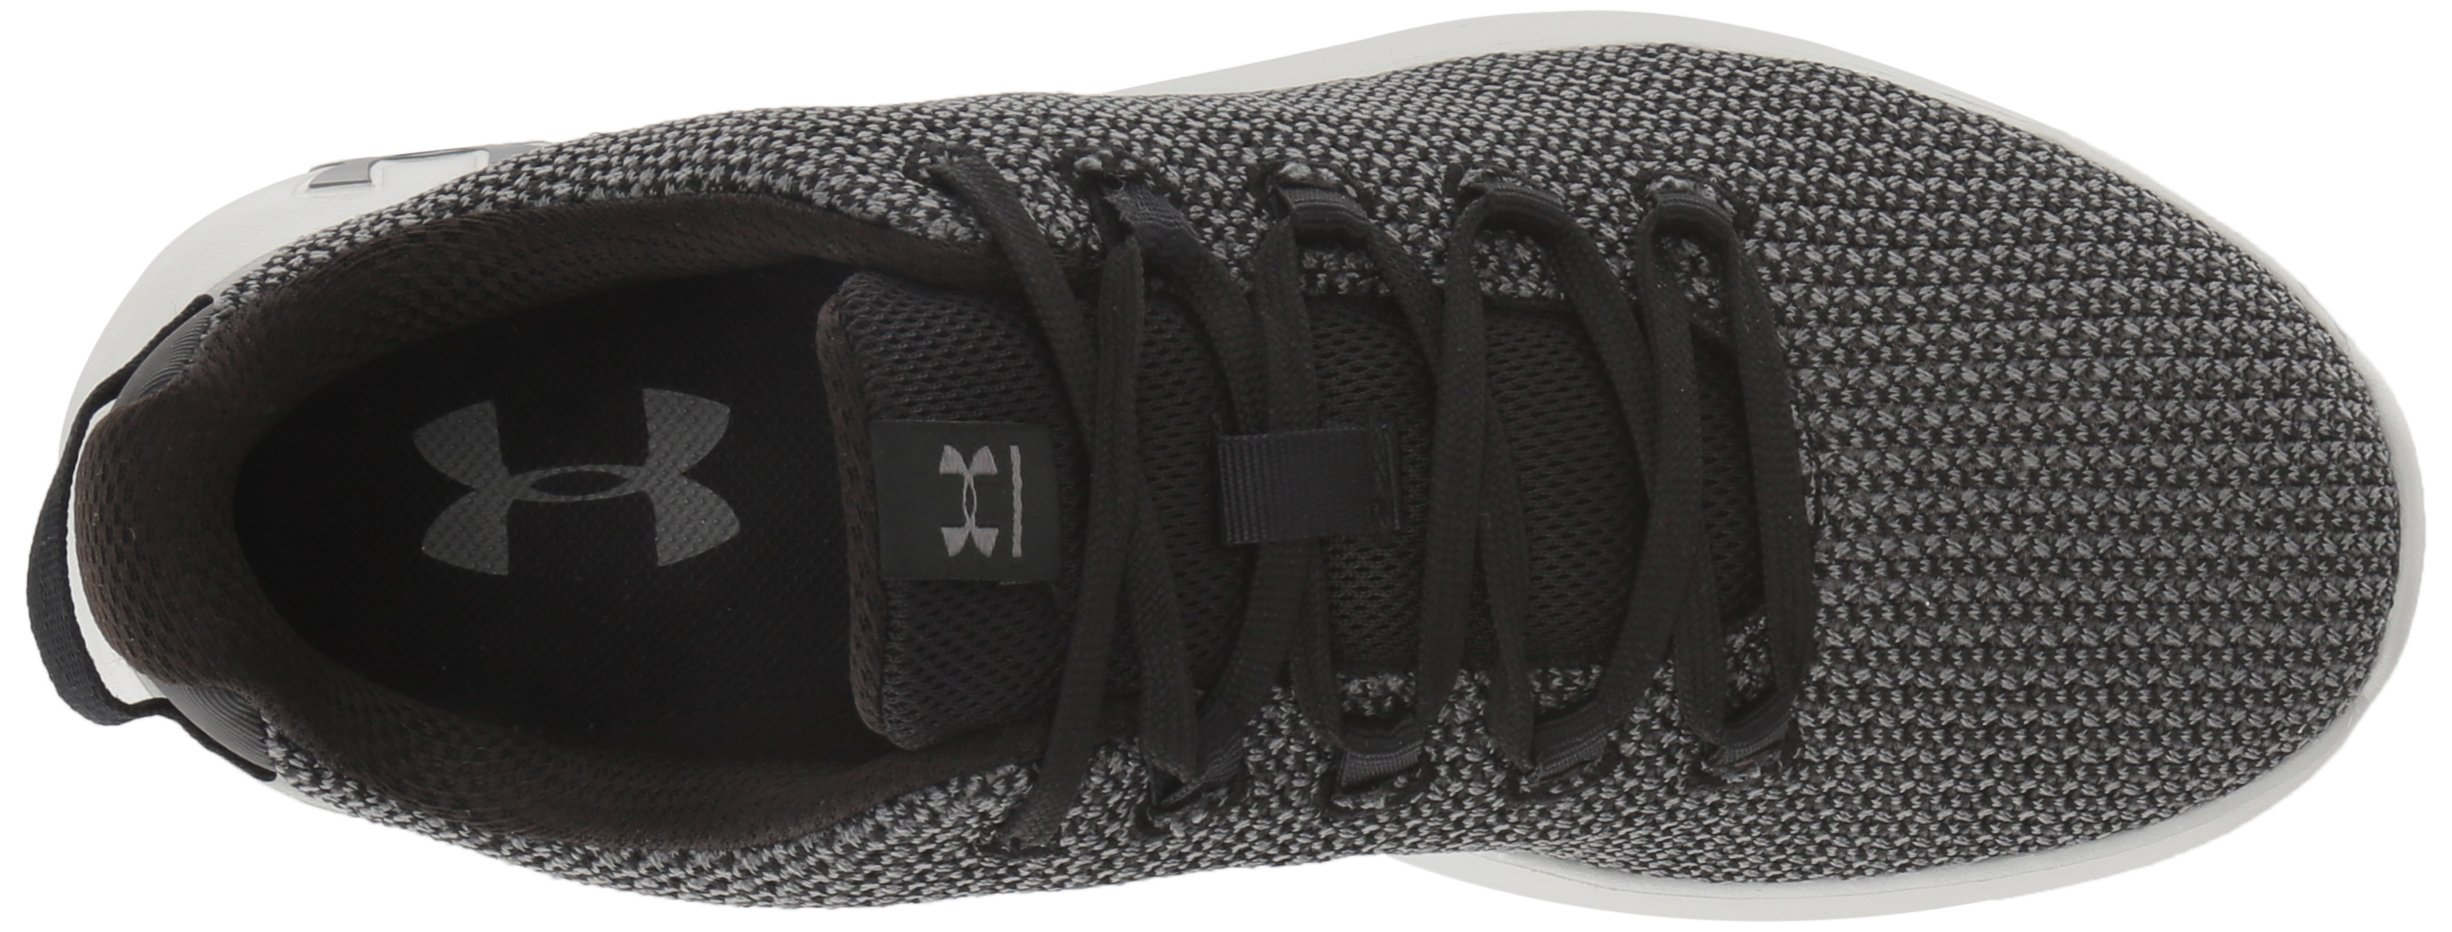 81%2Bjfh PtWL - Under Armour Women's's Ripple Competition Running Shoes